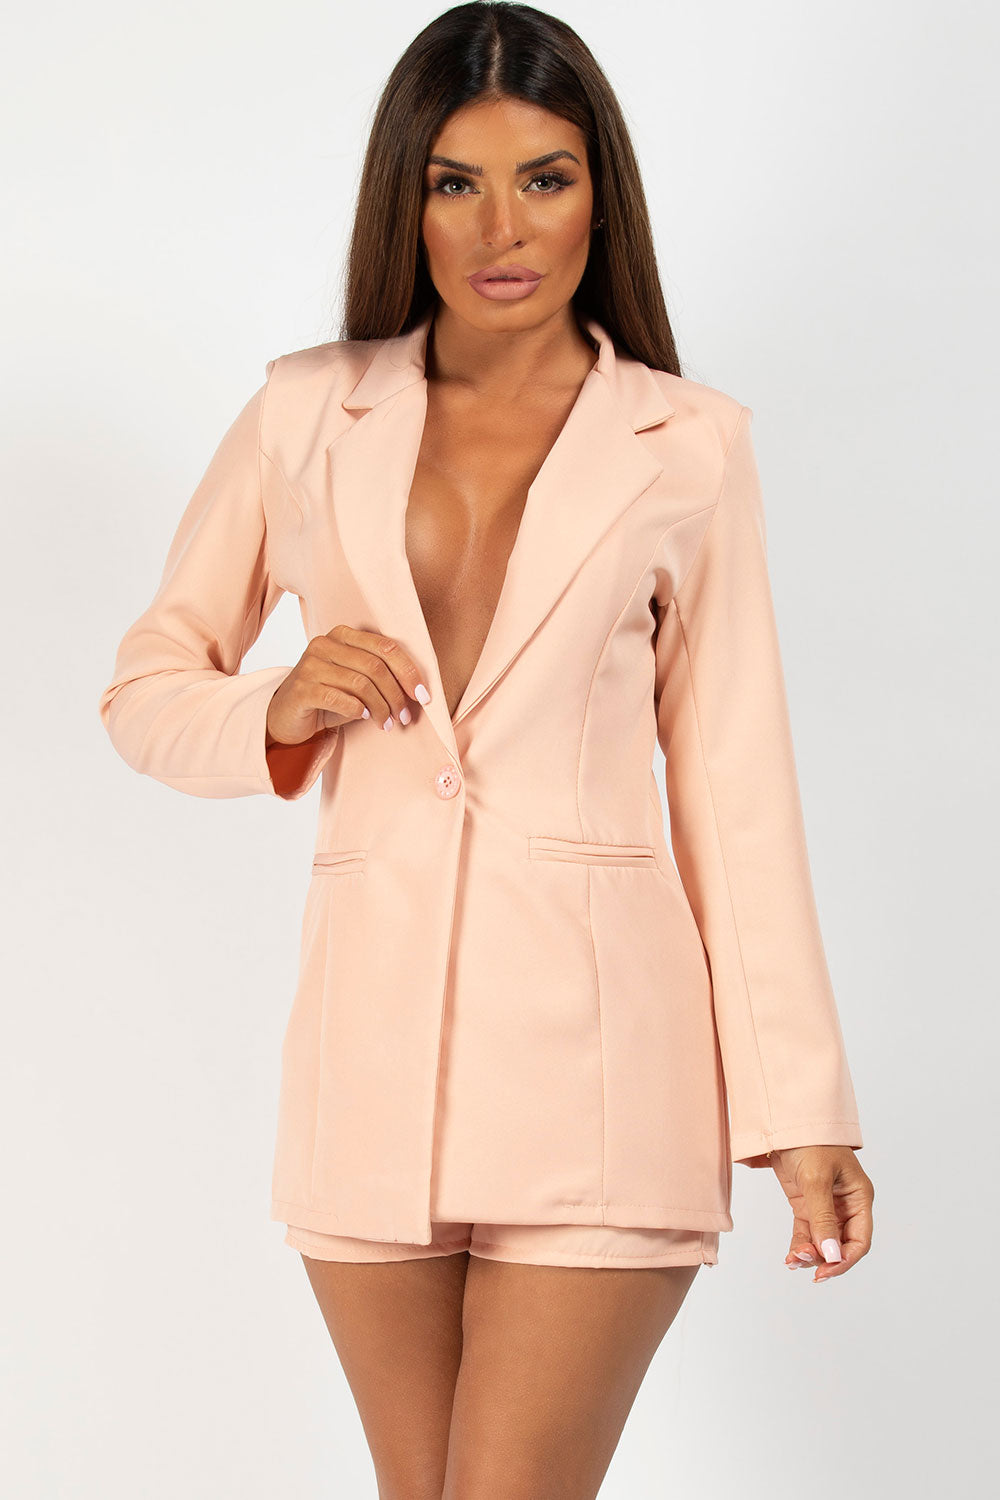 nude blazer and short two piece set